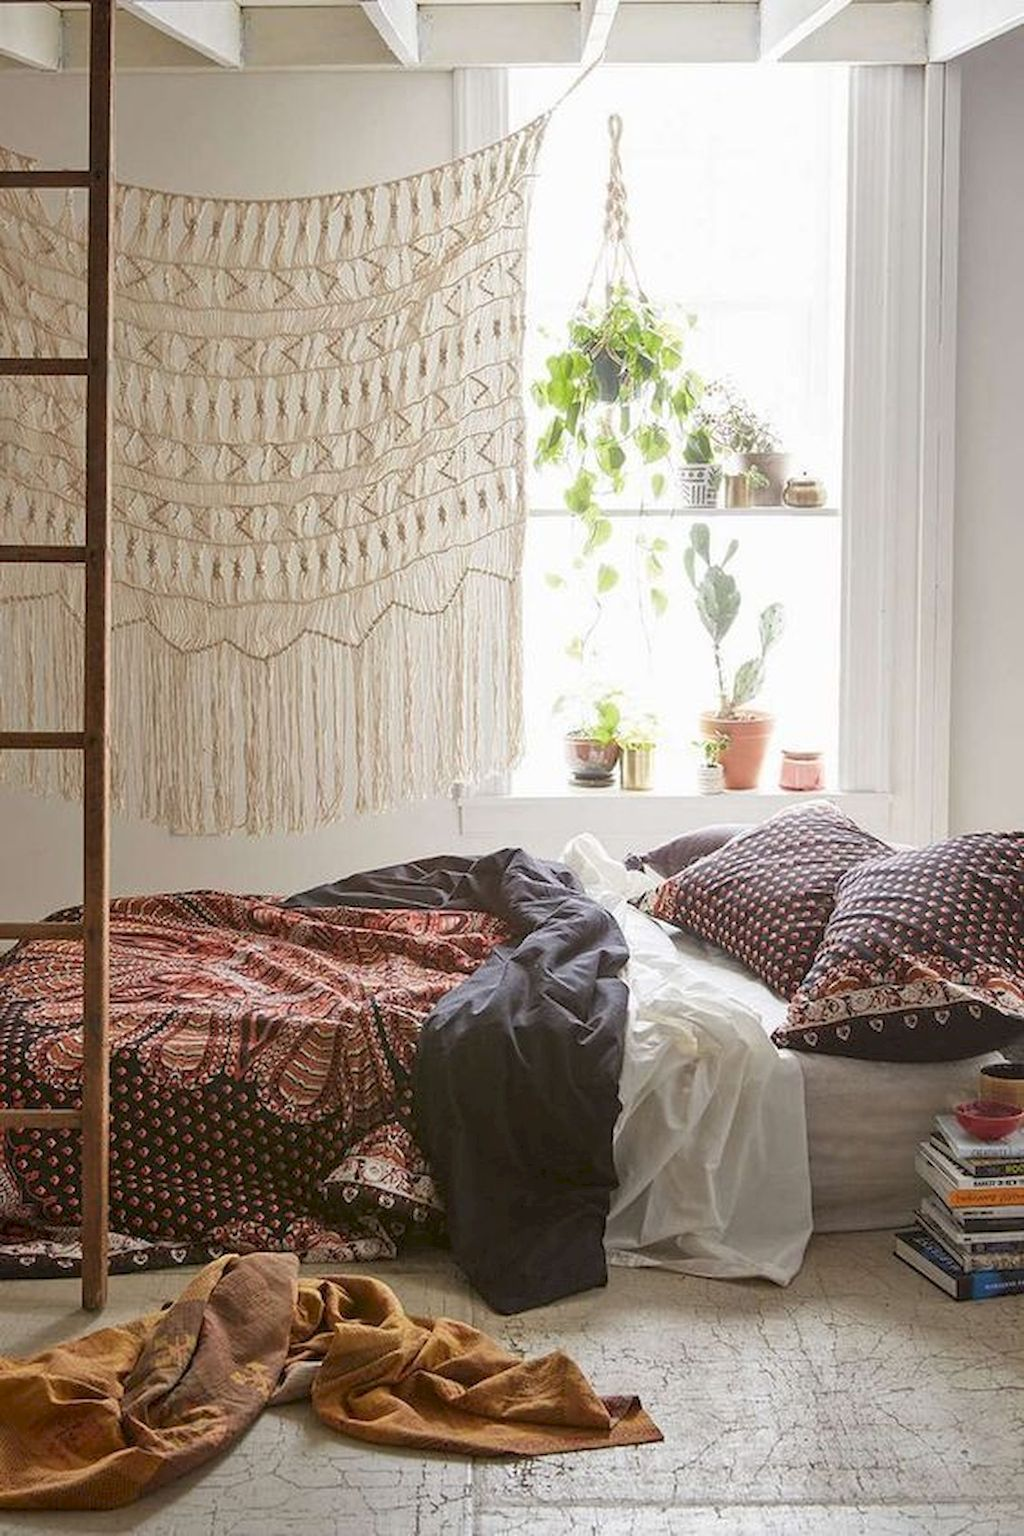 High Quality Bohemian Bedrooms To Fashion Your Eclectic Tastes Https://carrebianhome.com/ Bohemian